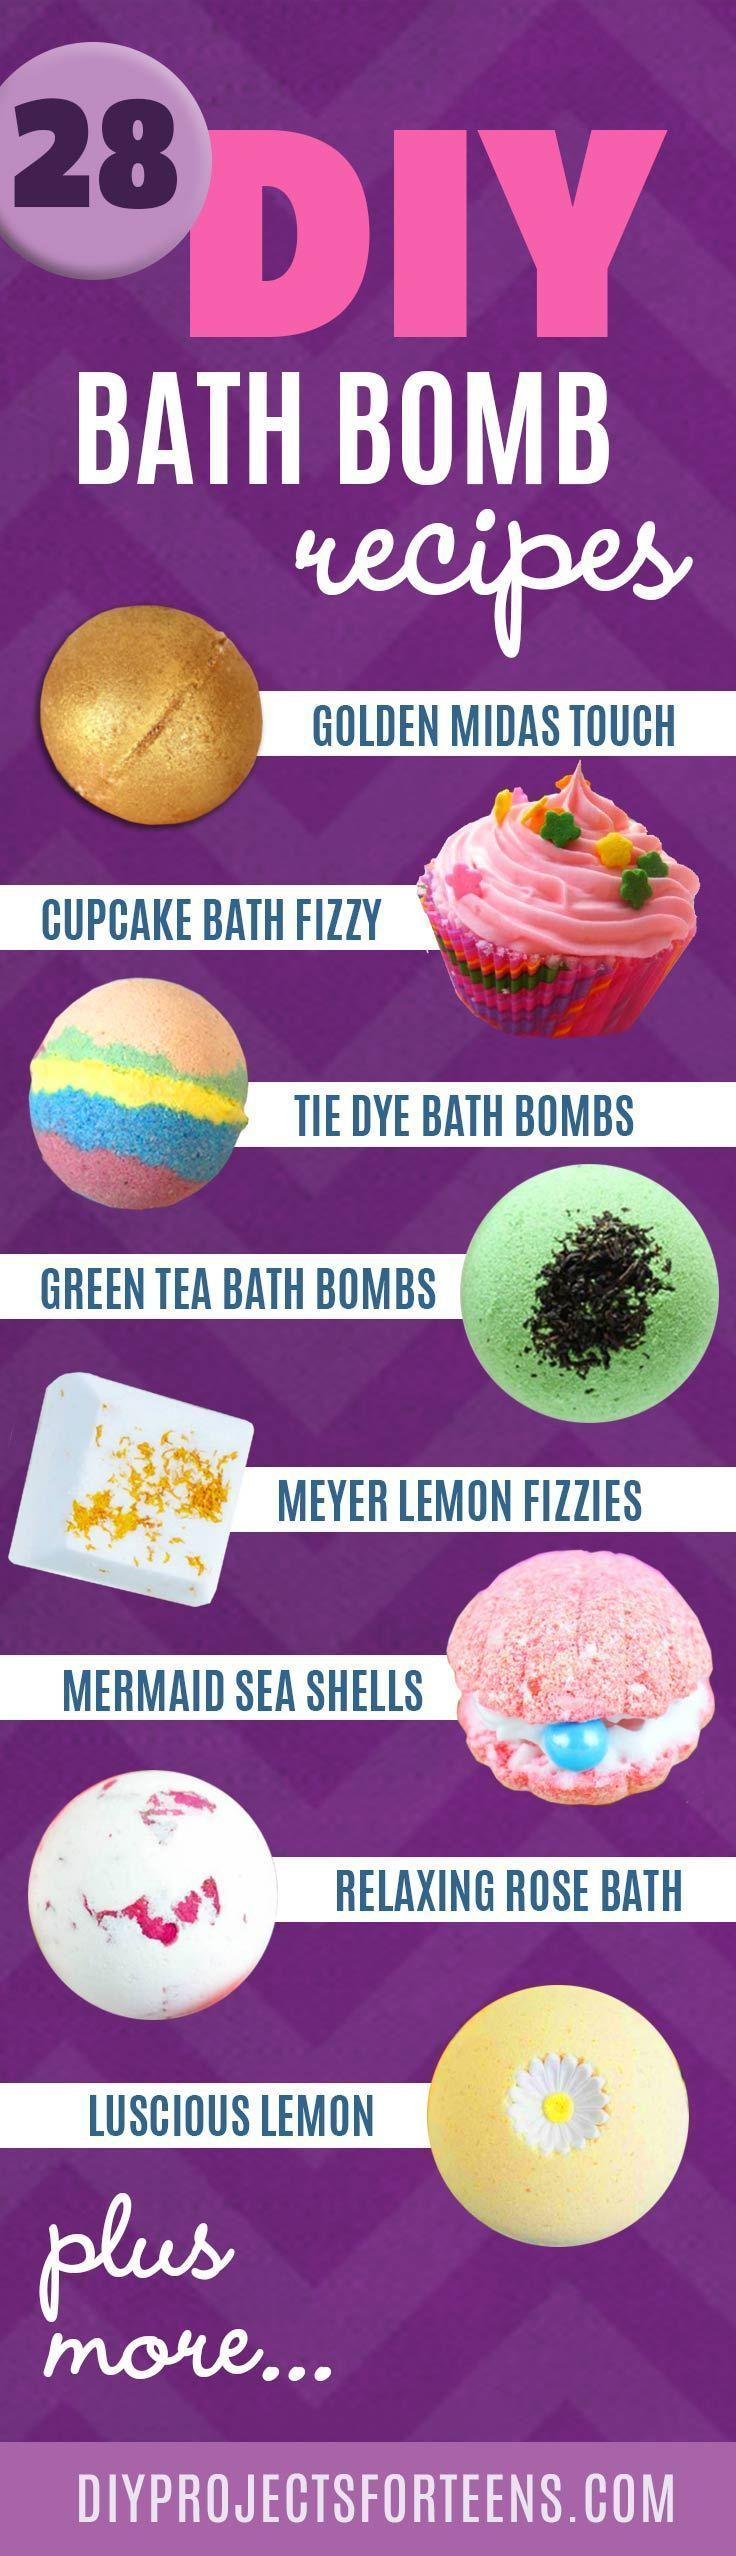 Cheap Crafts Top 25 Best Diy For Teens Ideas On Pinterest Diy Crafts For